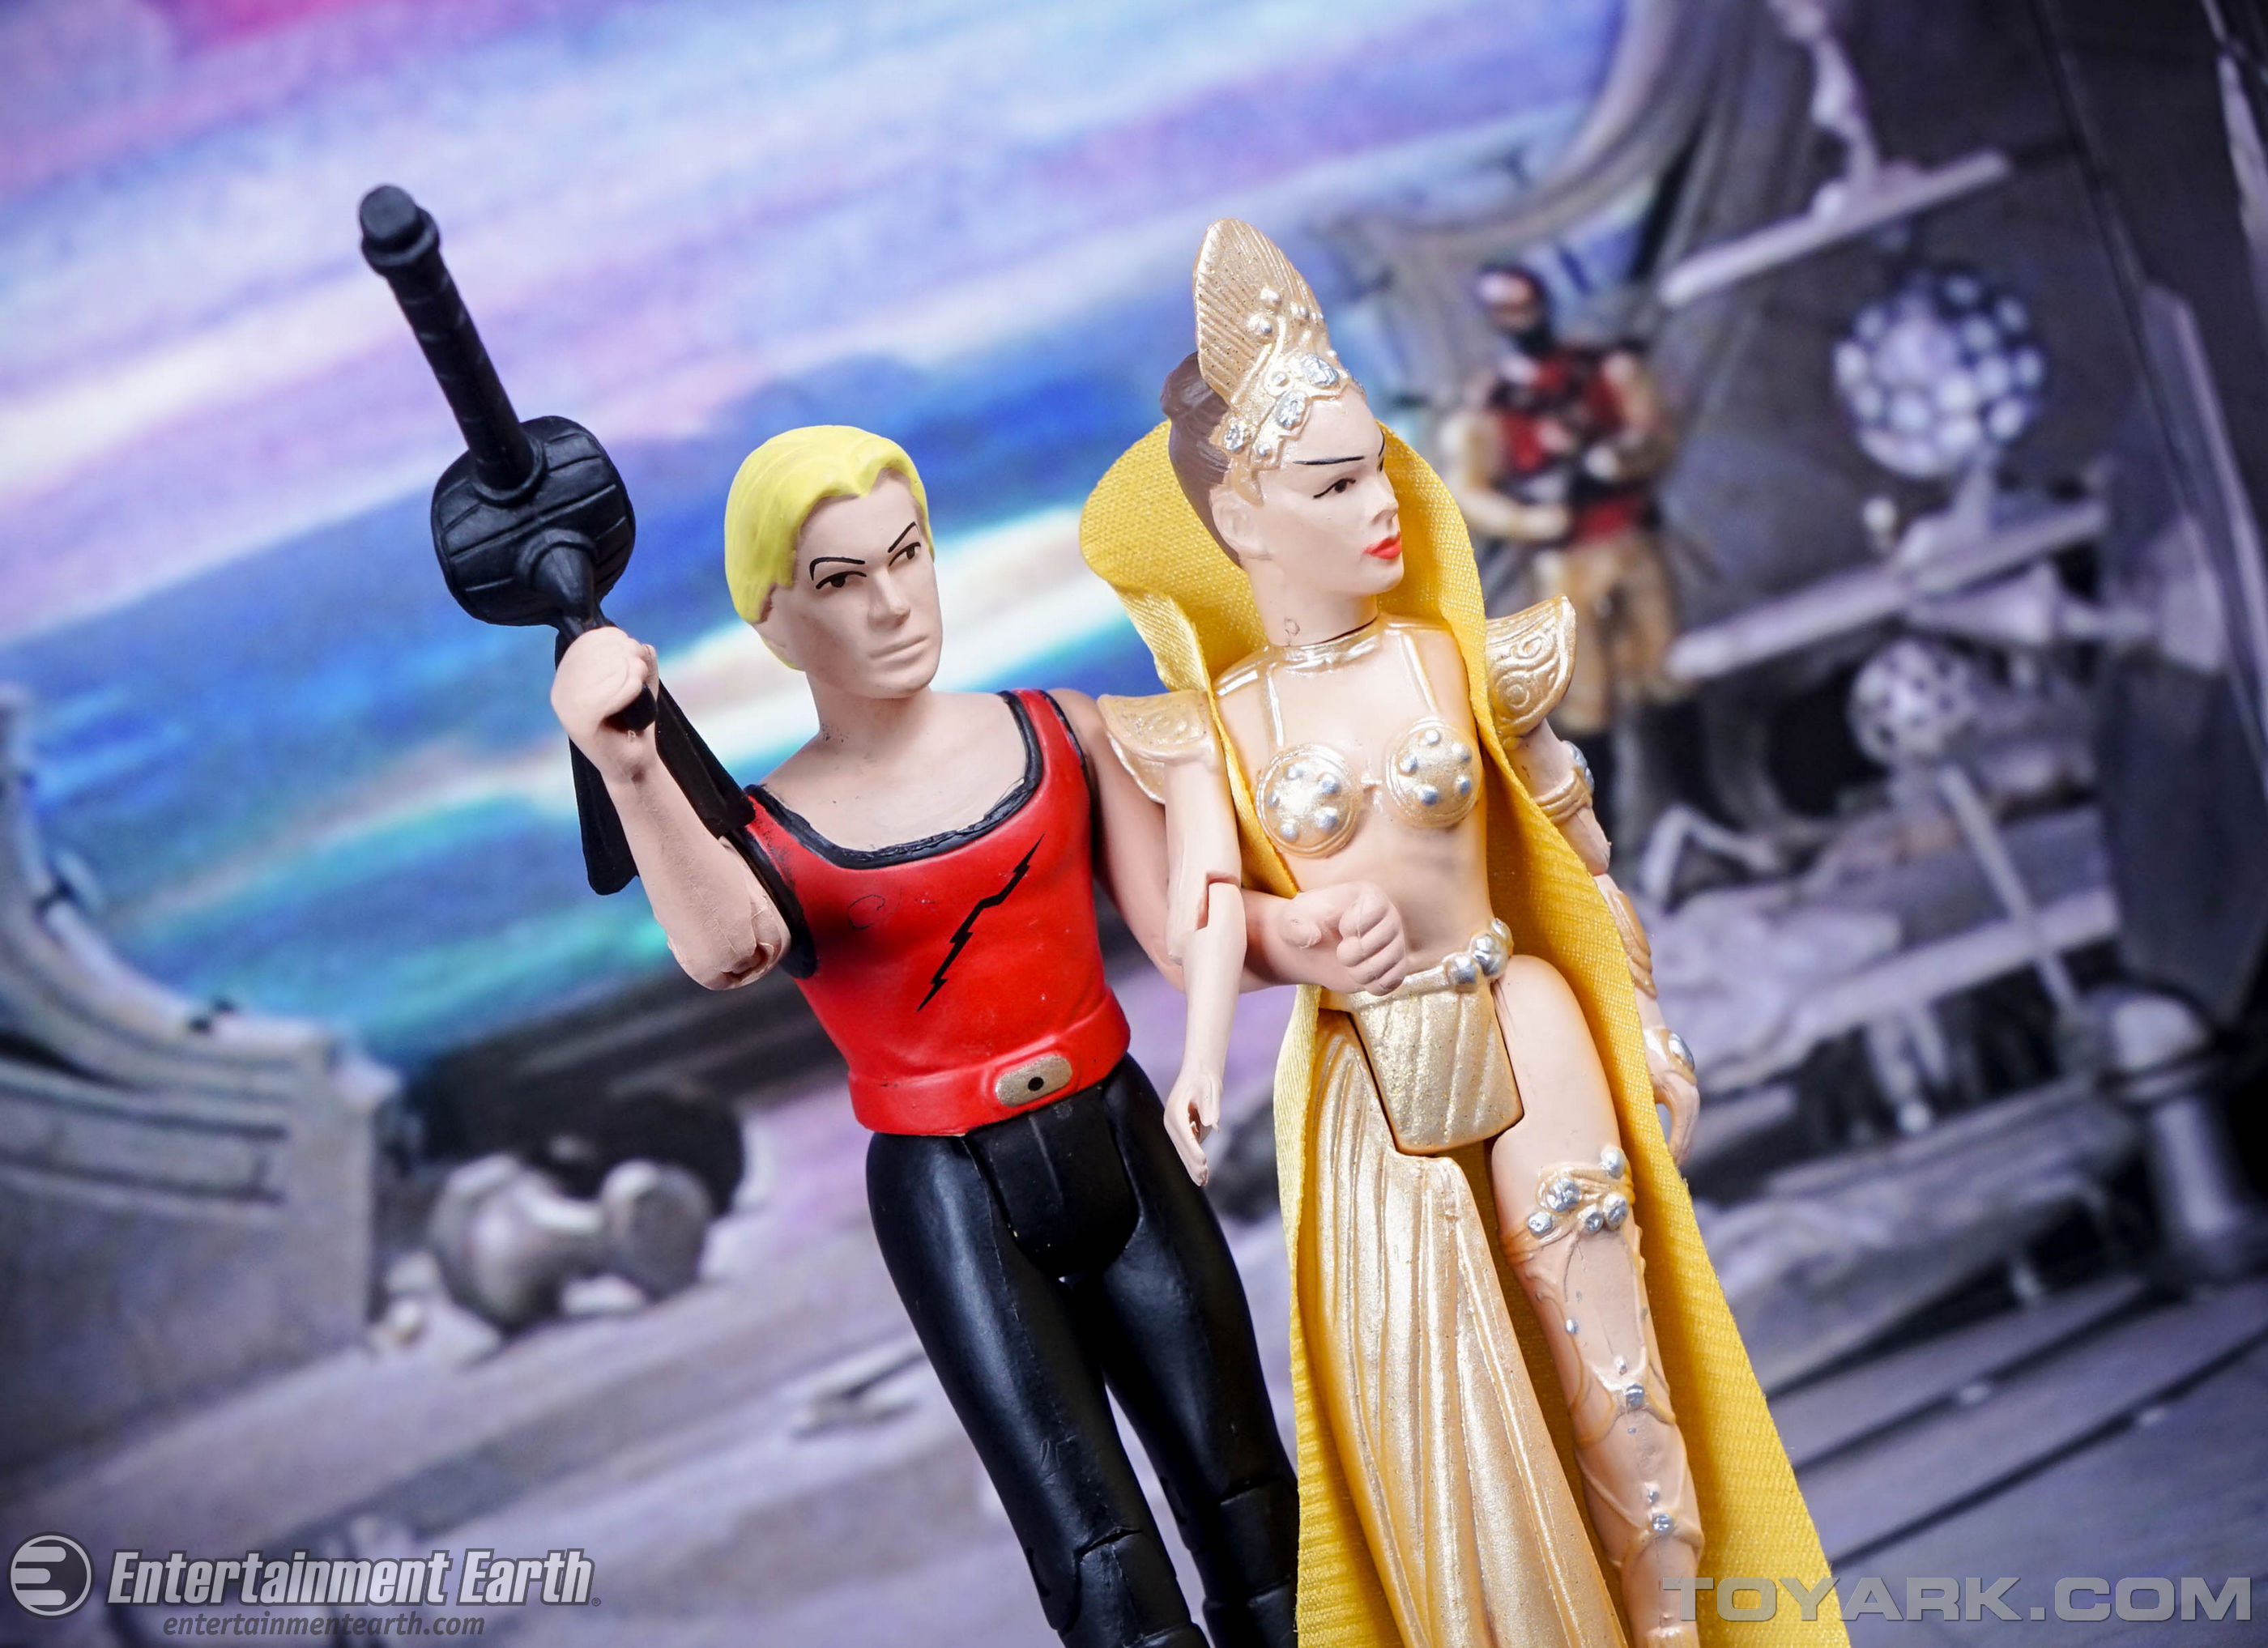 http://news.toyark.com/wp-content/uploads/sites/4/2015/09/Flash-Gordon-Series-1-Figures-016.jpg